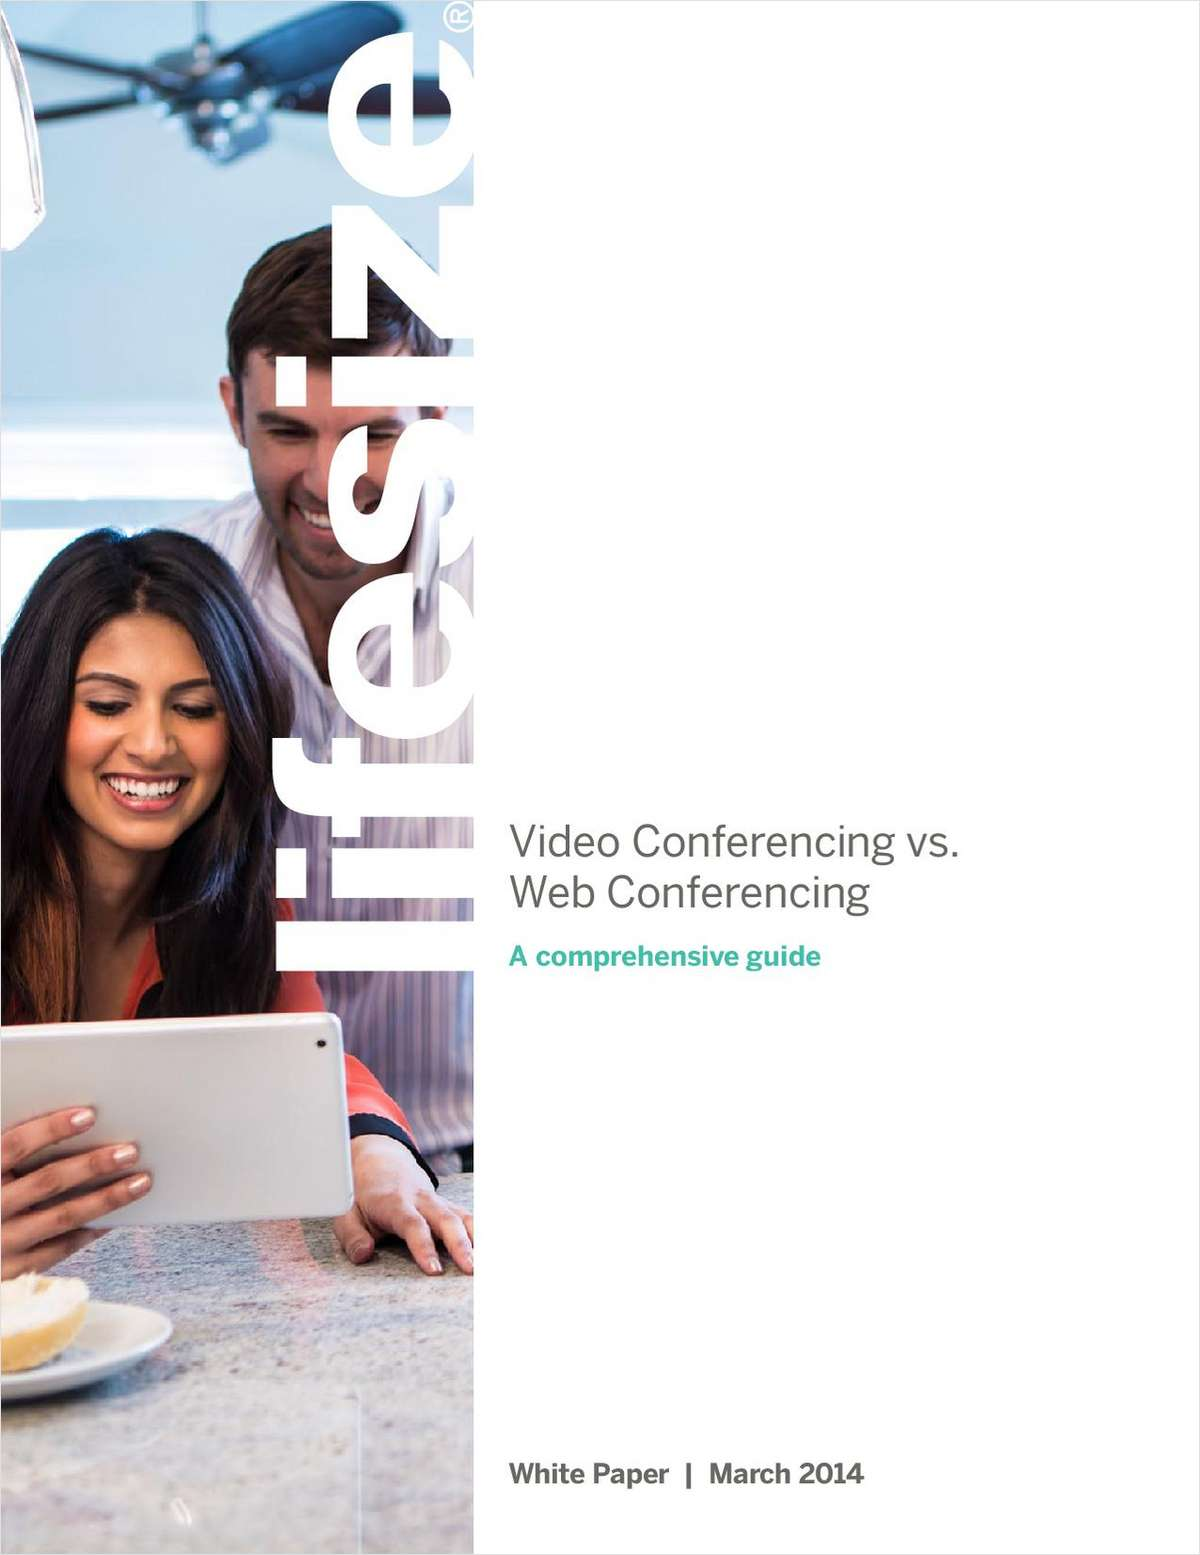 Video Conferencing vs. Web Conferencing